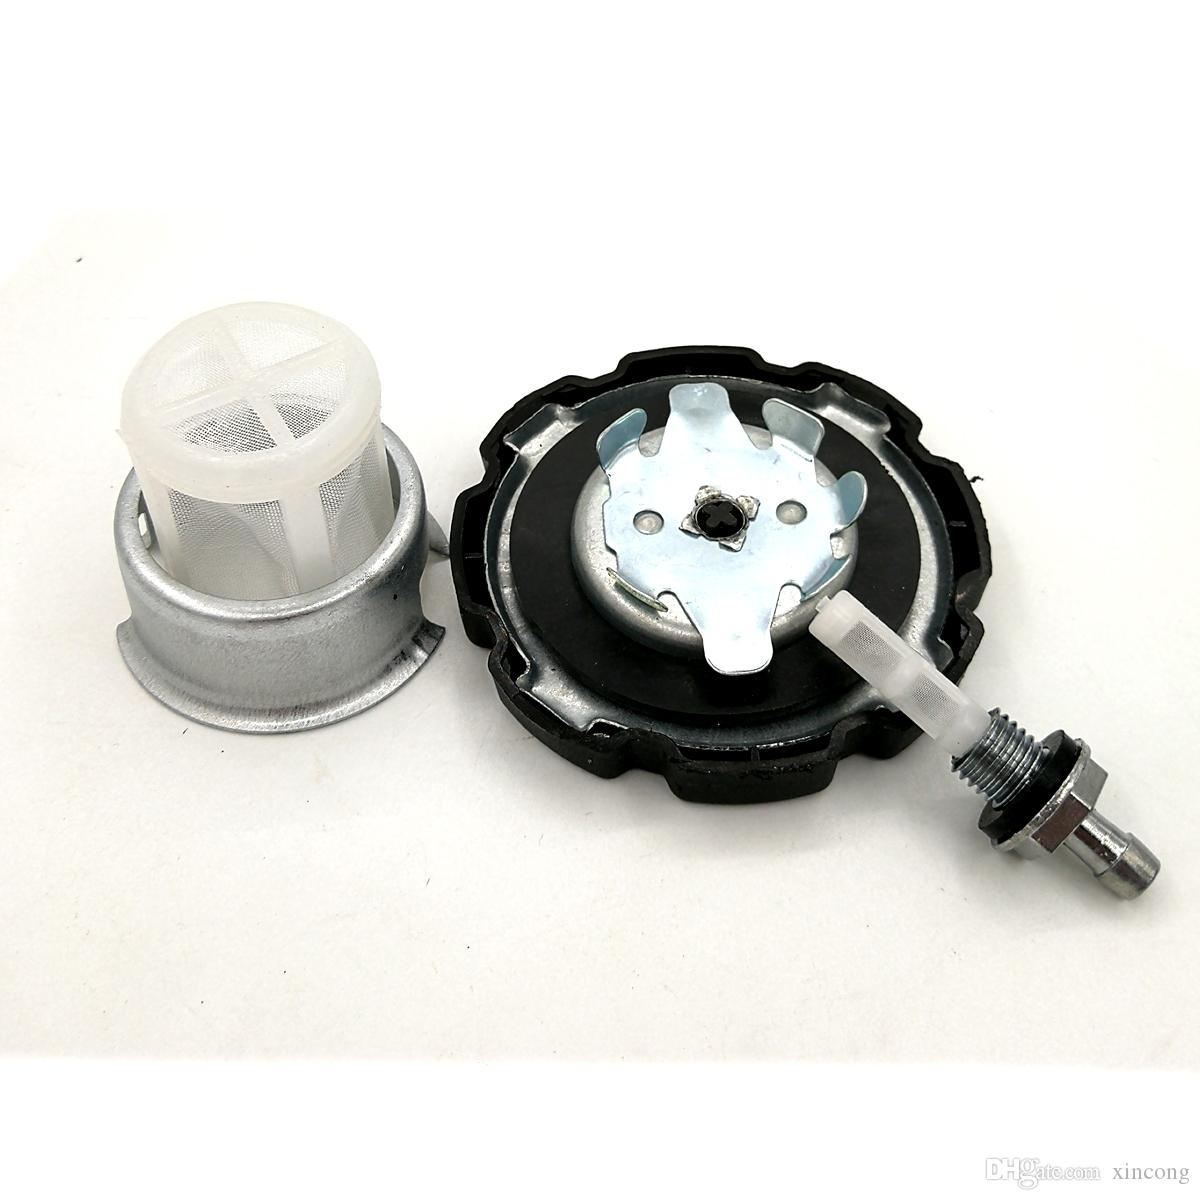 Fuel Tank Gas Cap Joint Filter Set for HONDA GX120 GX160 GX200 GX240 GX270  GX340 GX390 5 5HP 6 5HP 11HP 13HP Engine Generator